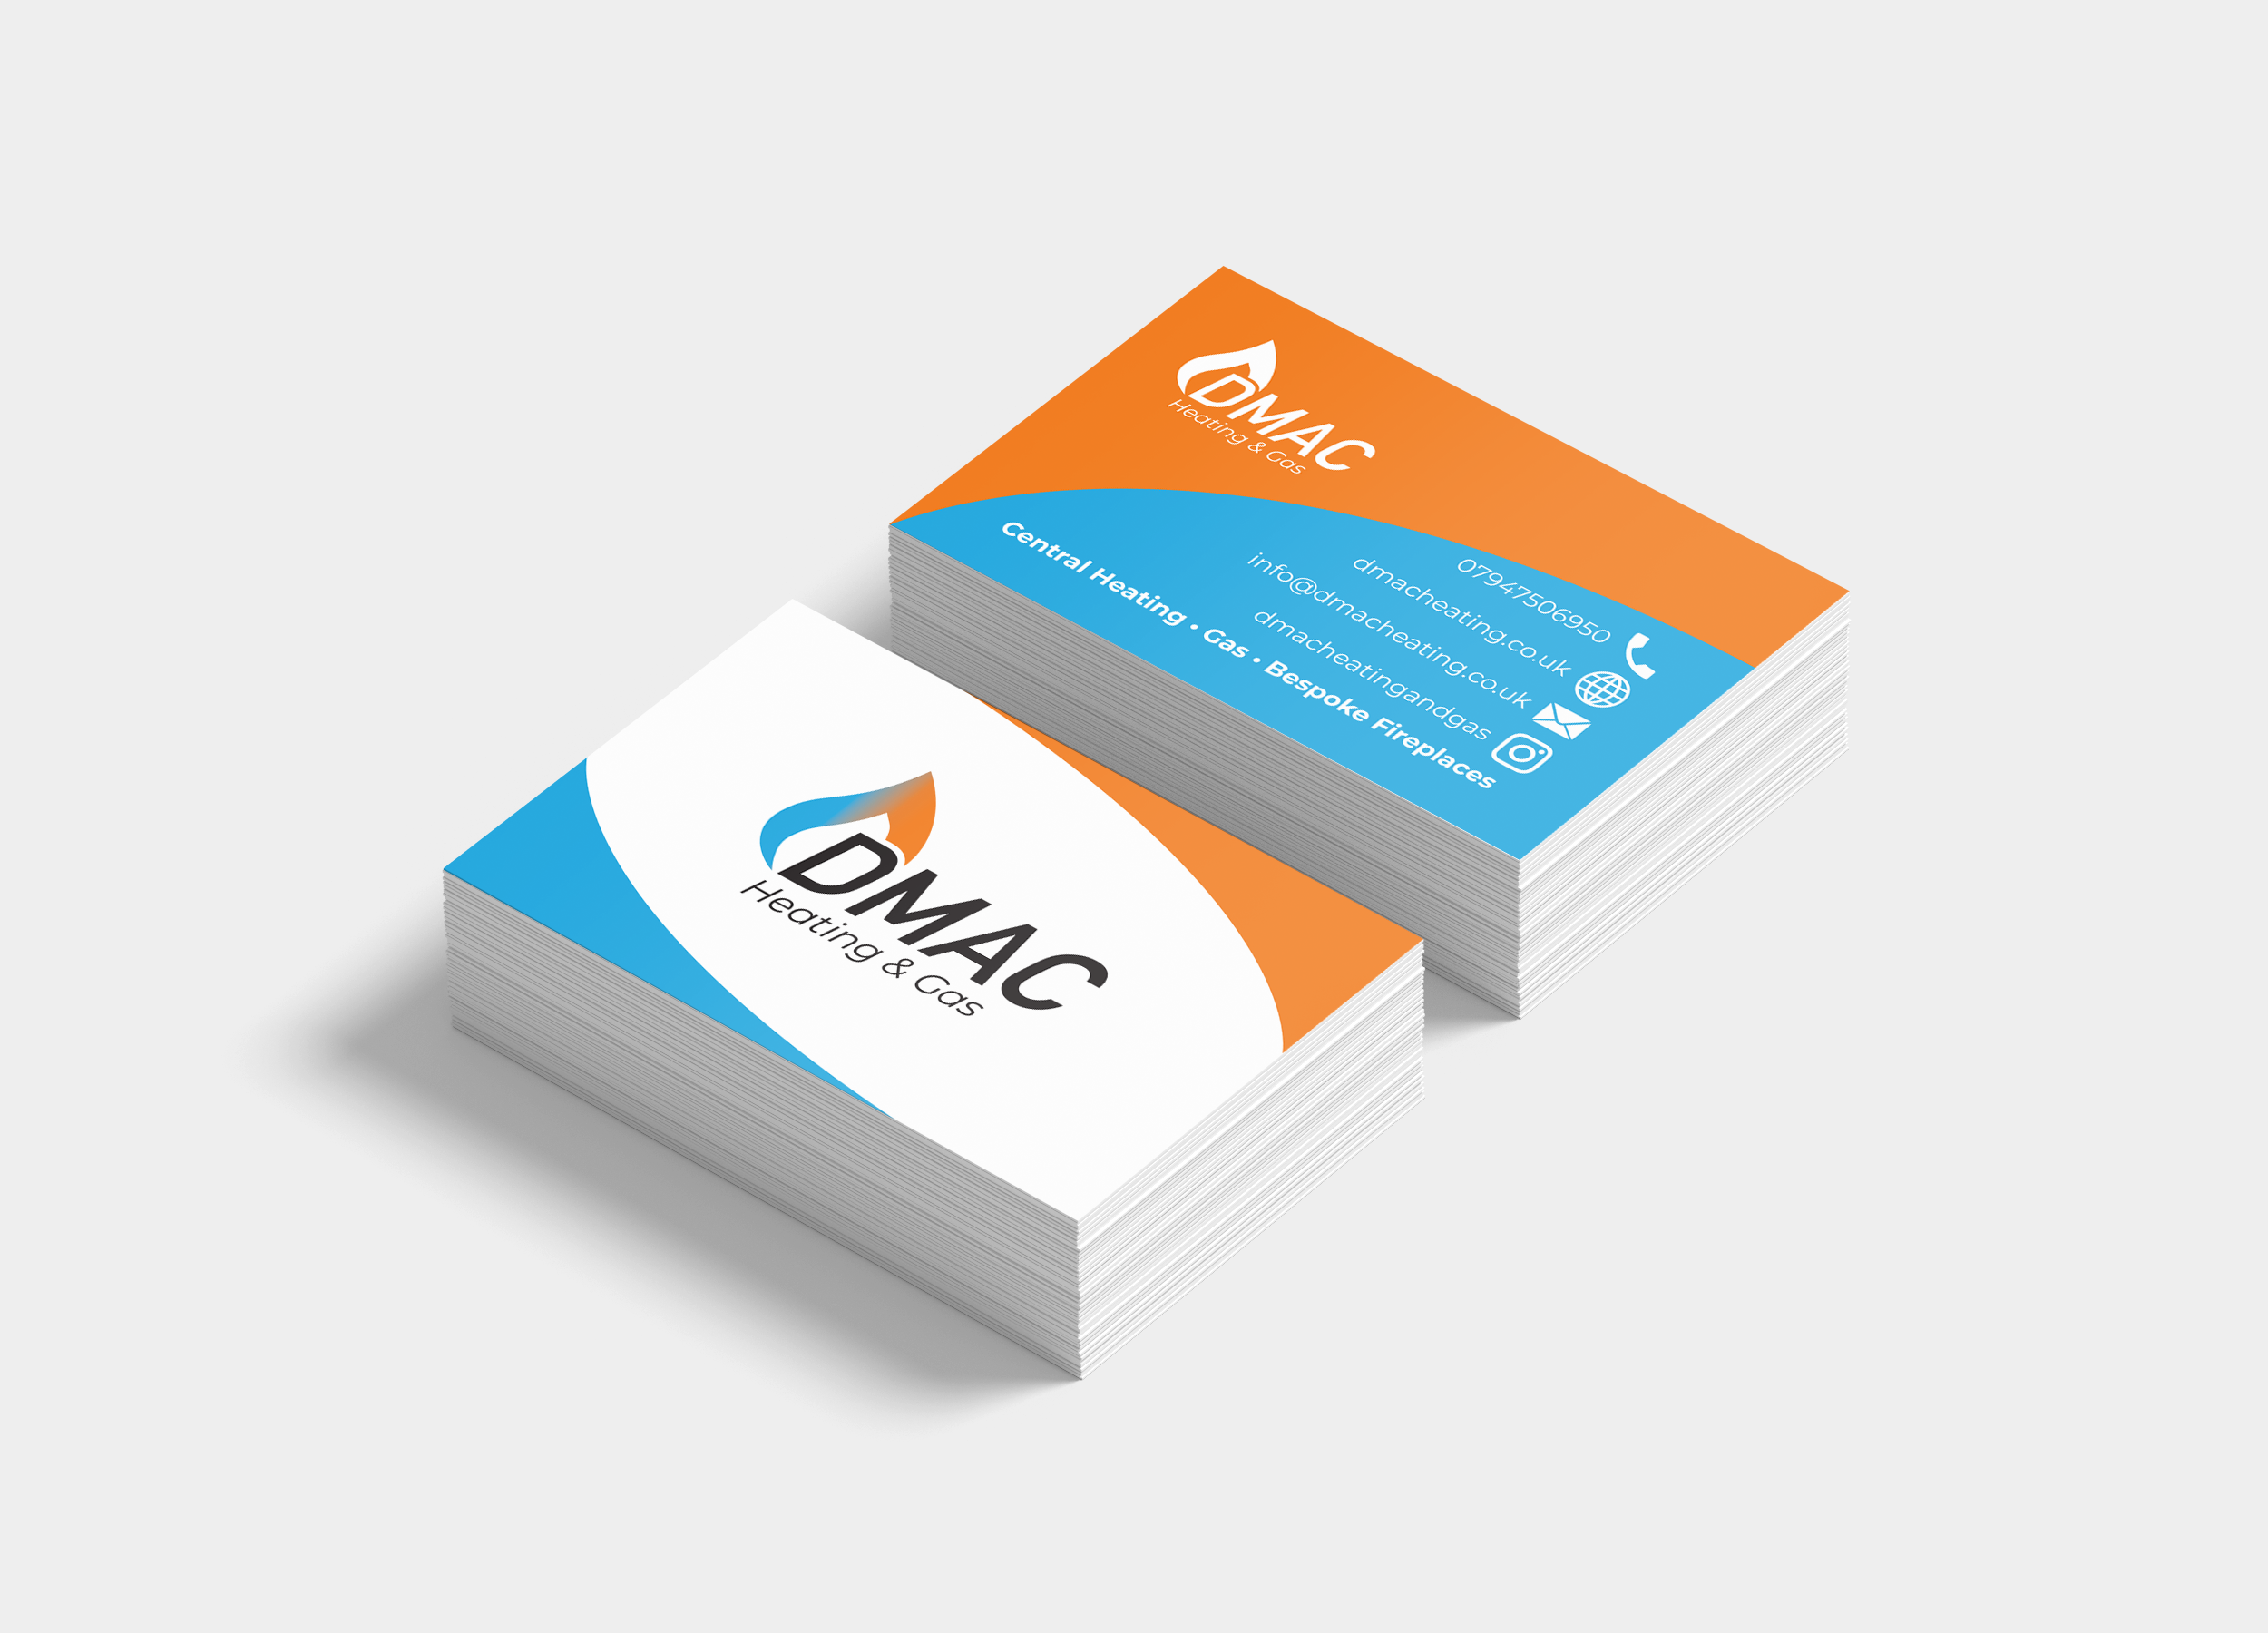 DMAC heating & gas business card mockup for Max Design Services